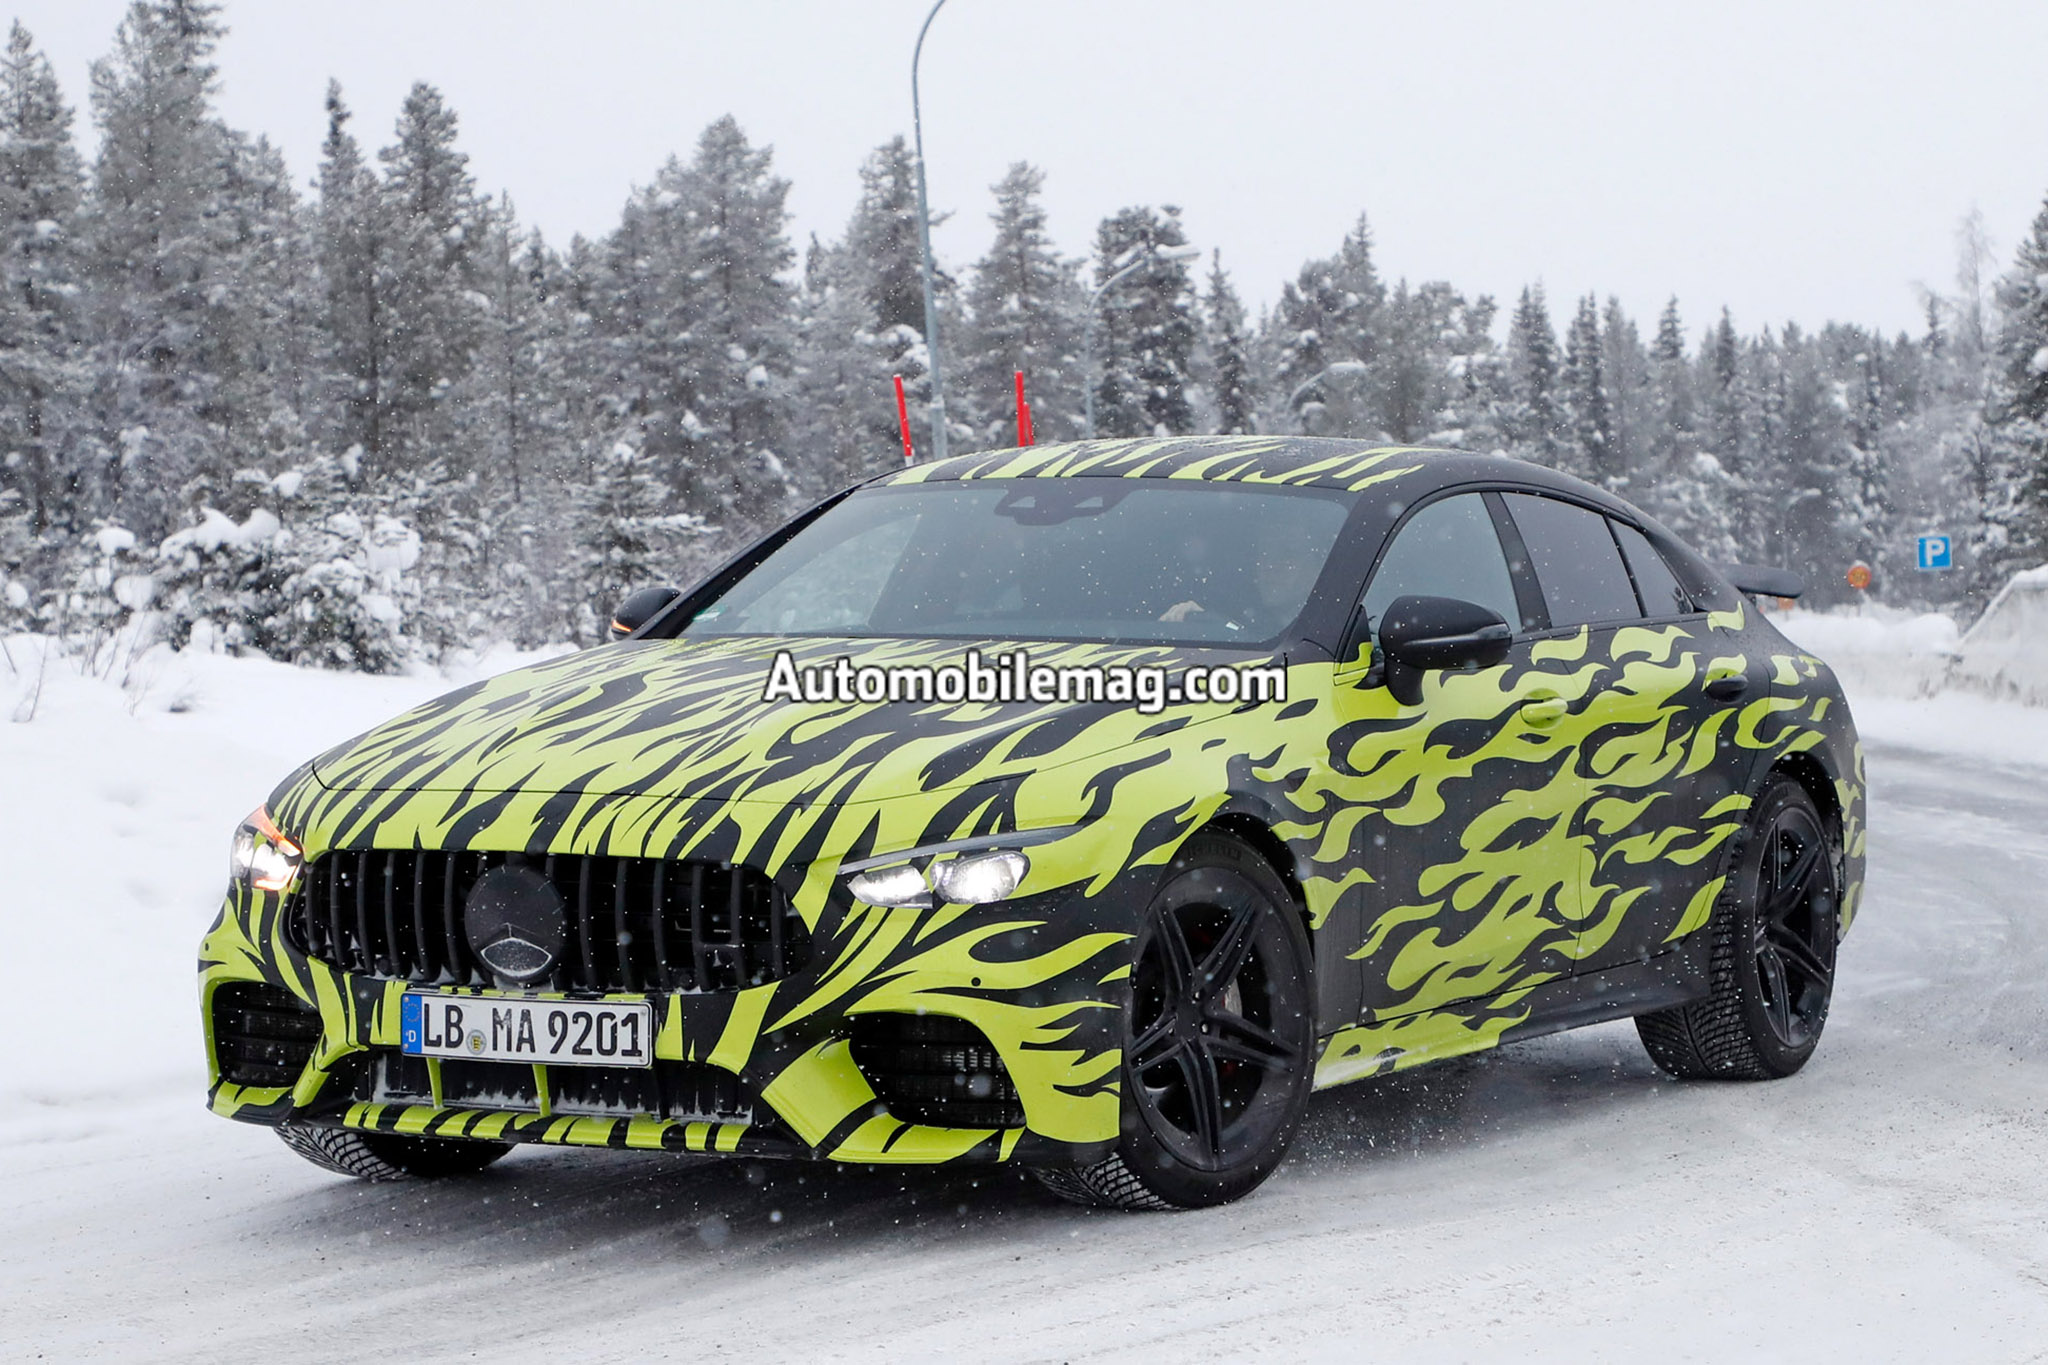 New 2018 Mercedes-AMG GT four-door leaks ahead of Geneva reveal